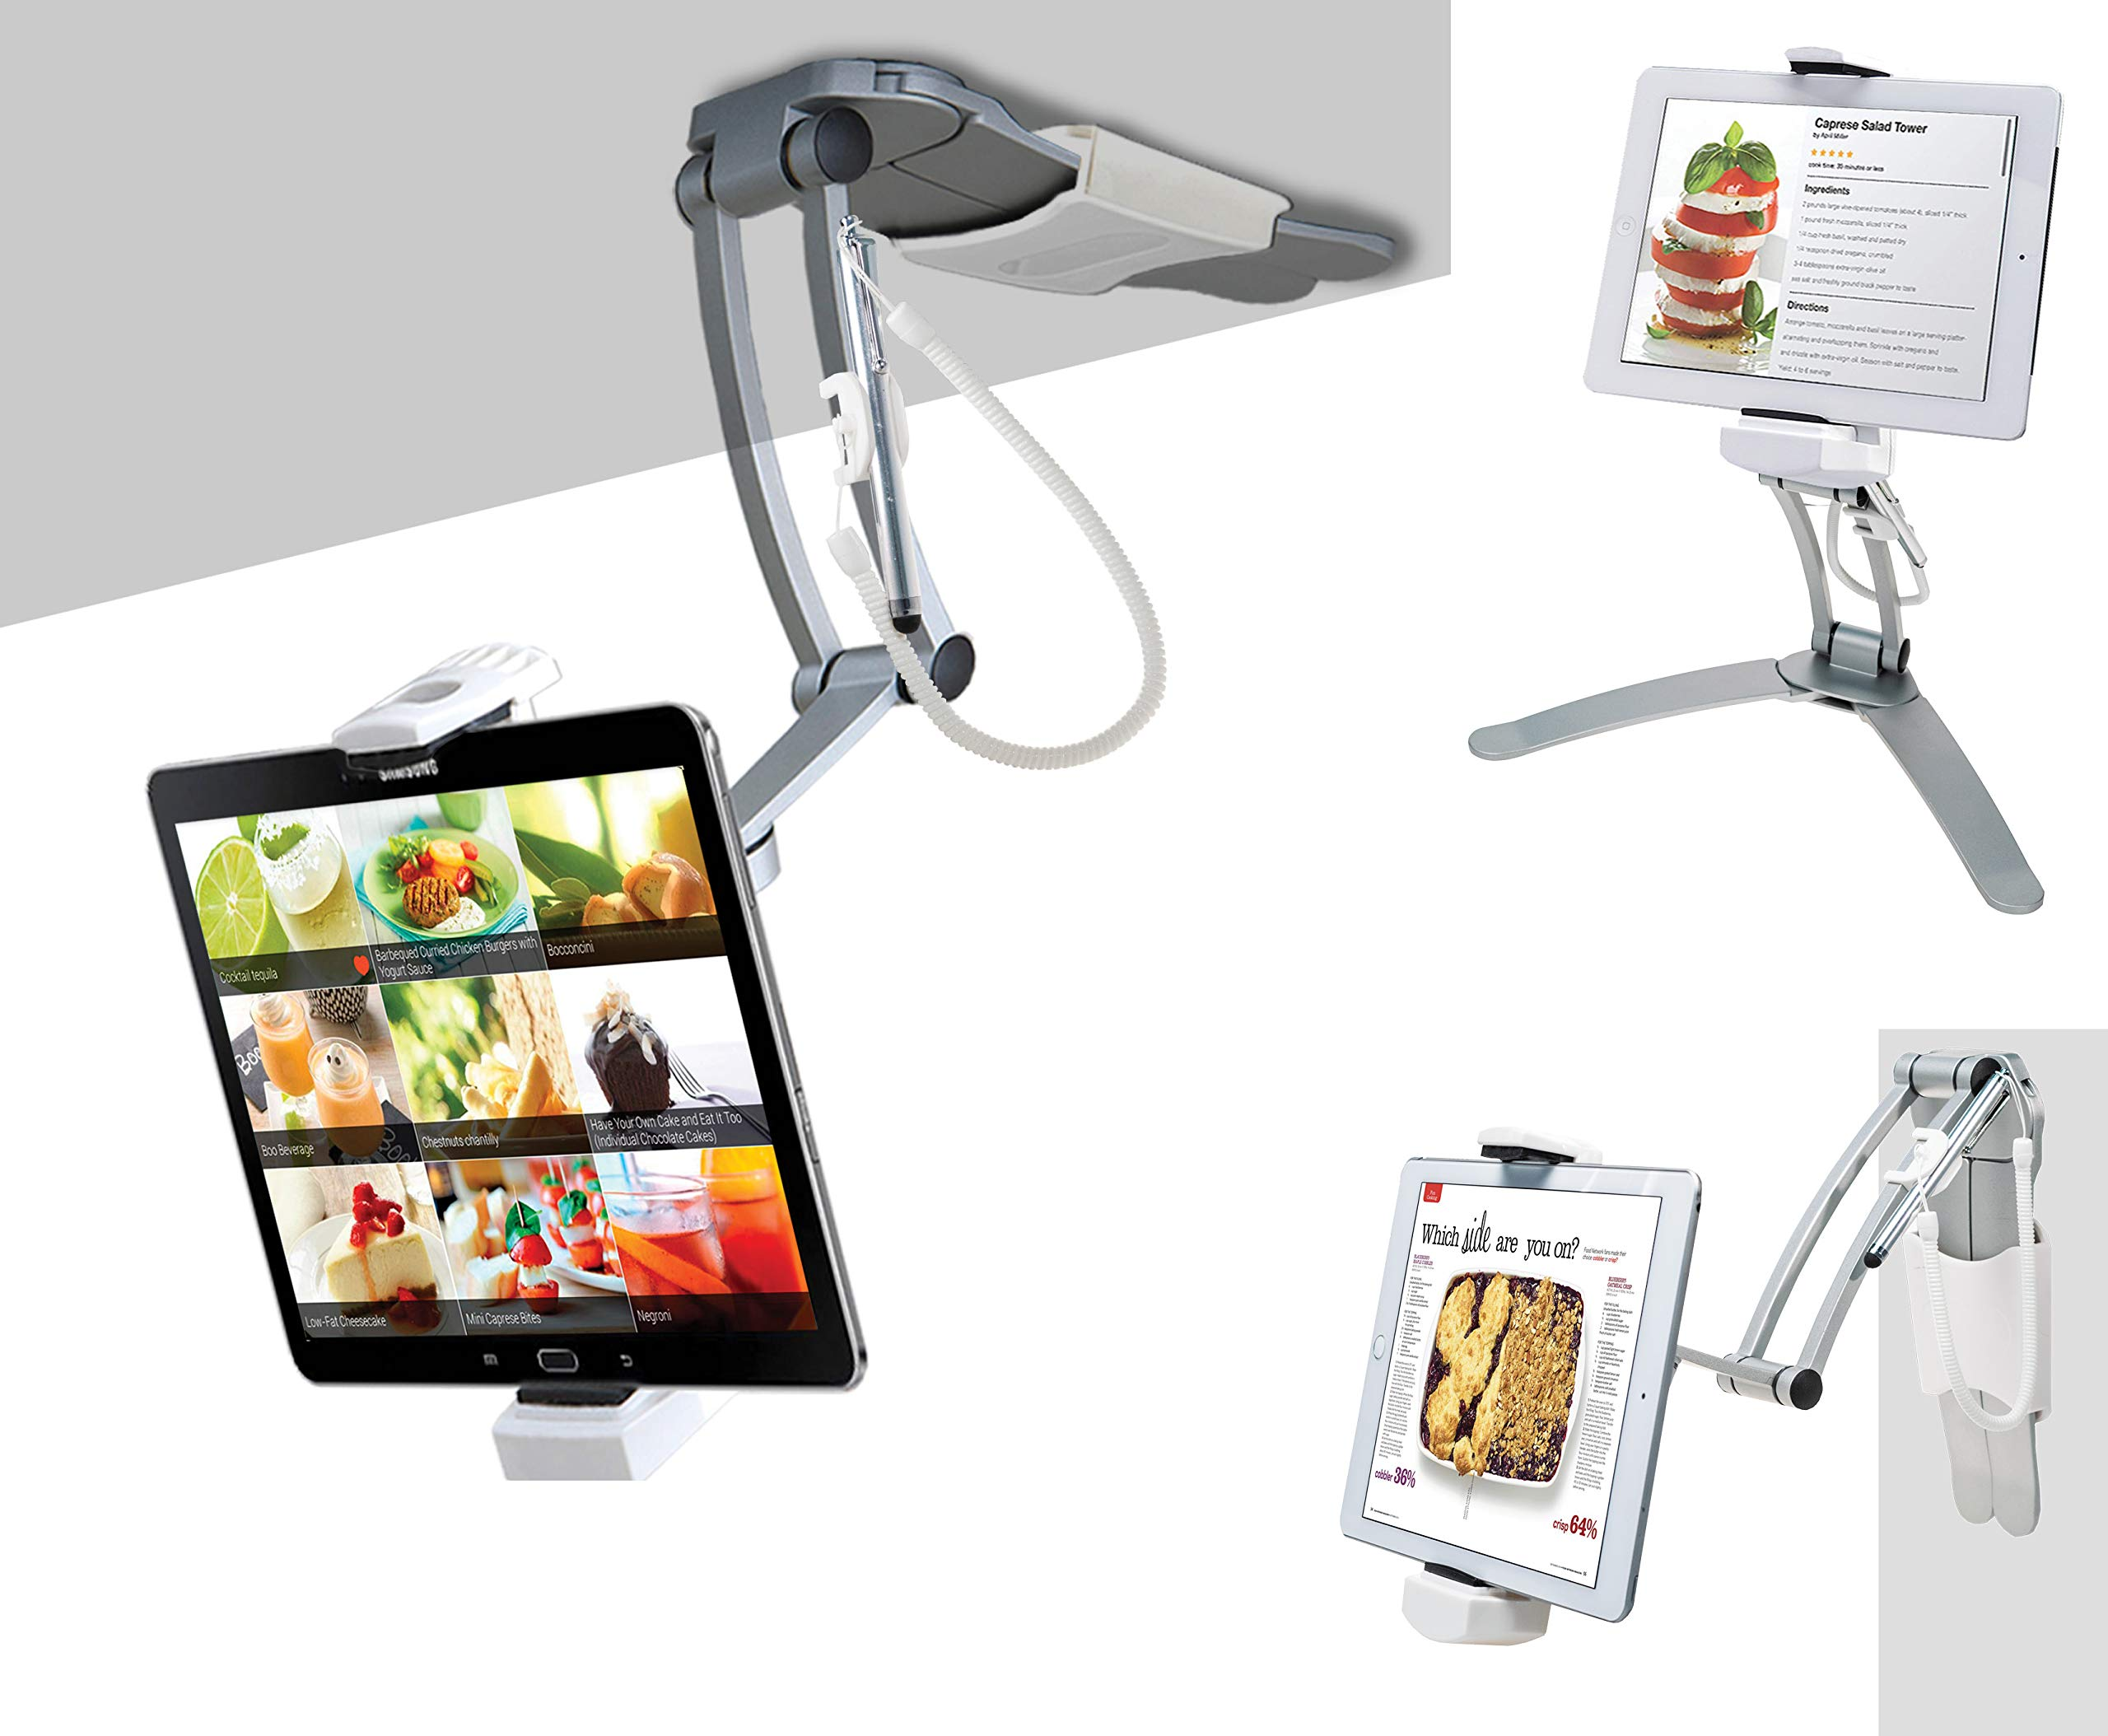 Details about 2-in-1 Kitchen Desktop Tablet Stand Wall Mount iPad Holder  with Stylus for 7-13